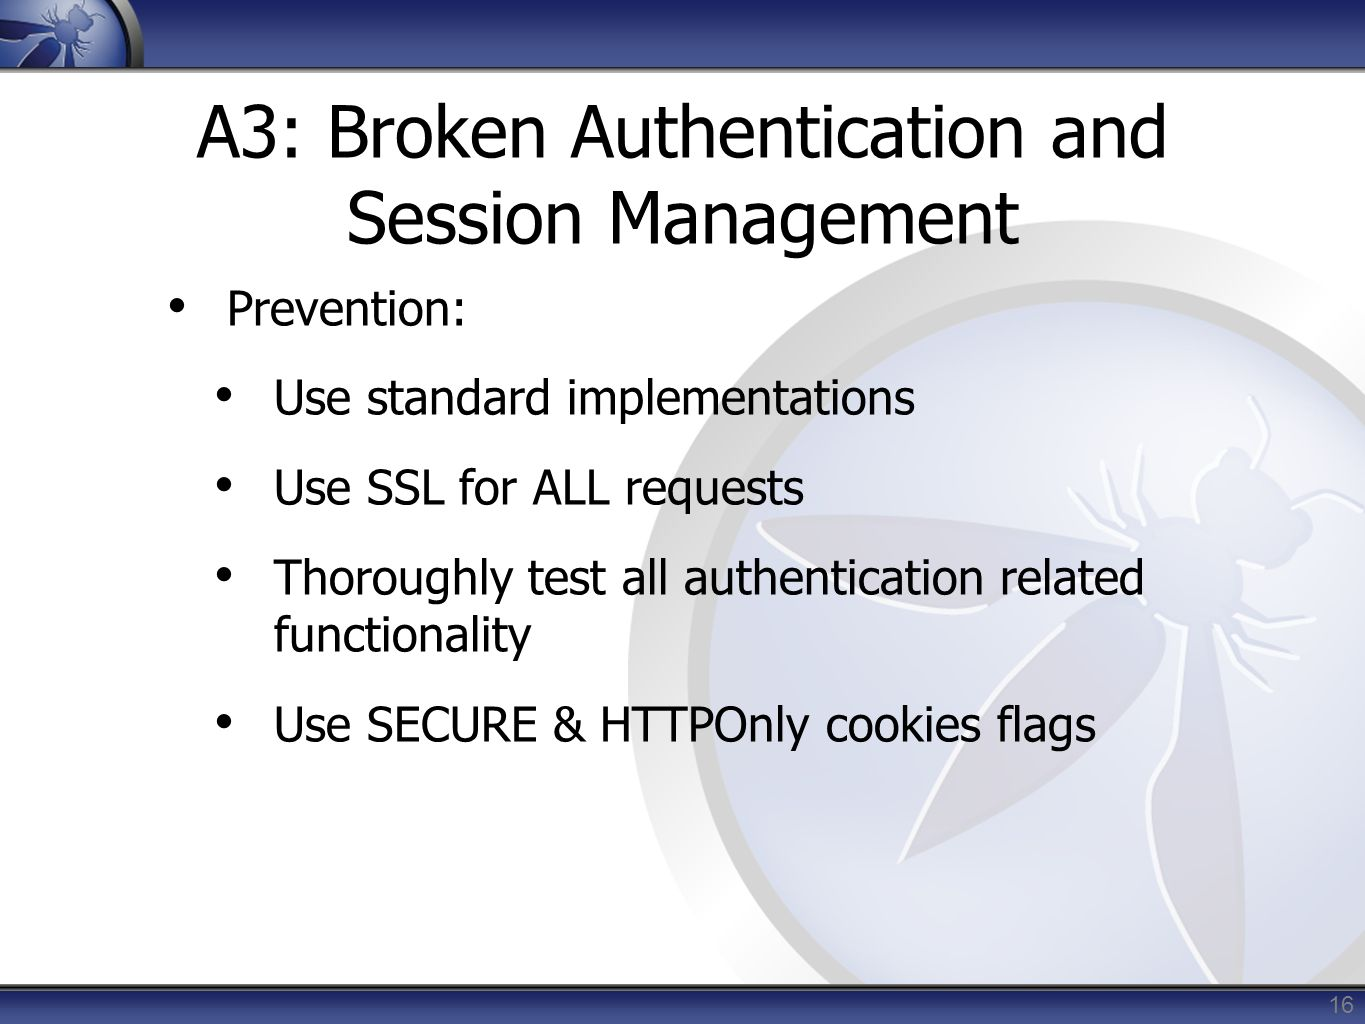 A3: Broken Authentication and Session Management